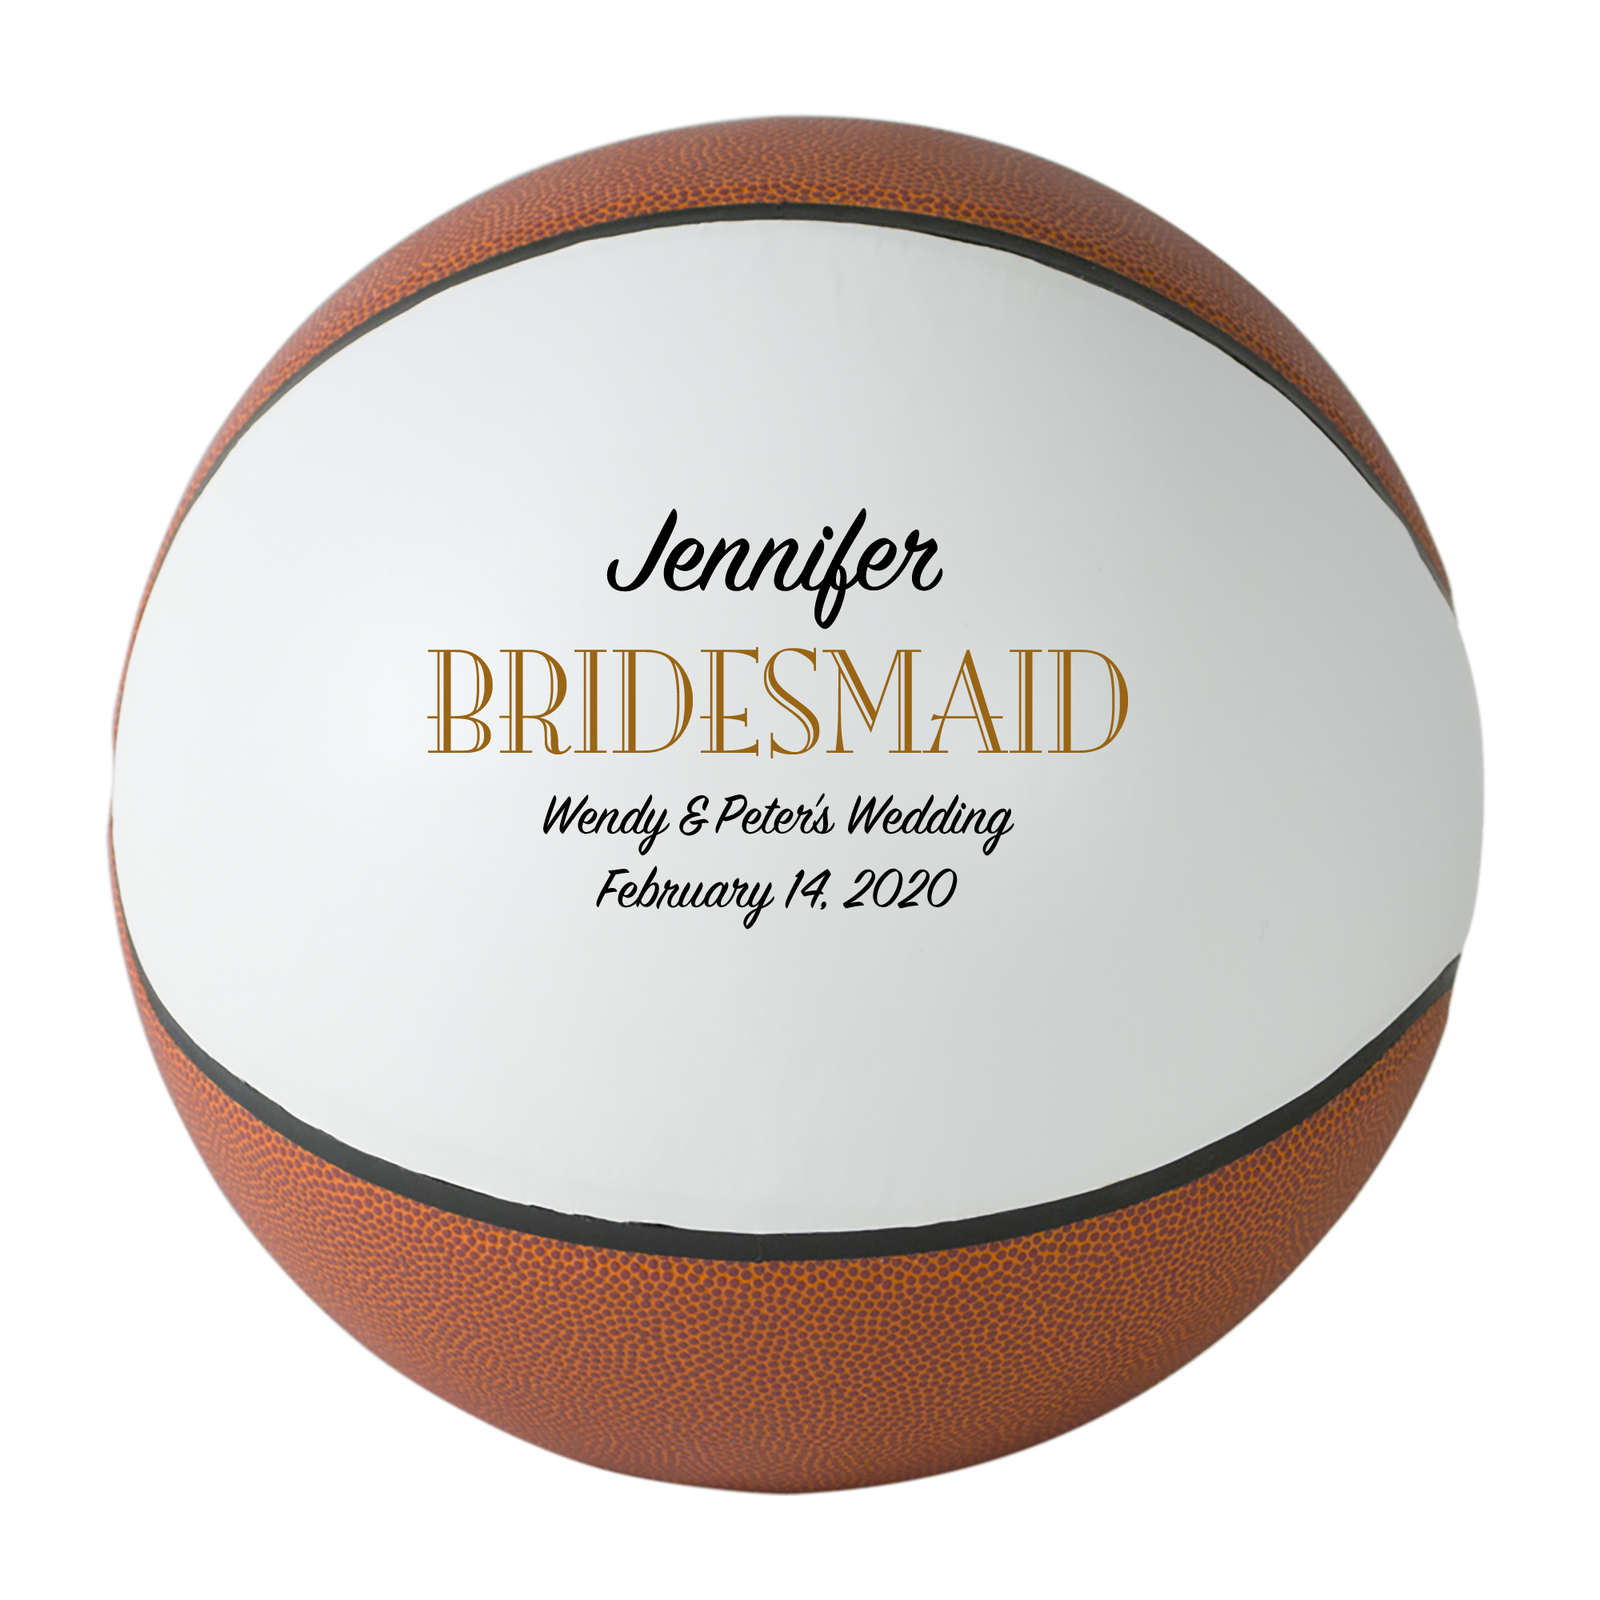 Primary image for Bridesmaid Regulation Basketball Wedding Gift - Personalized Wedding Favor